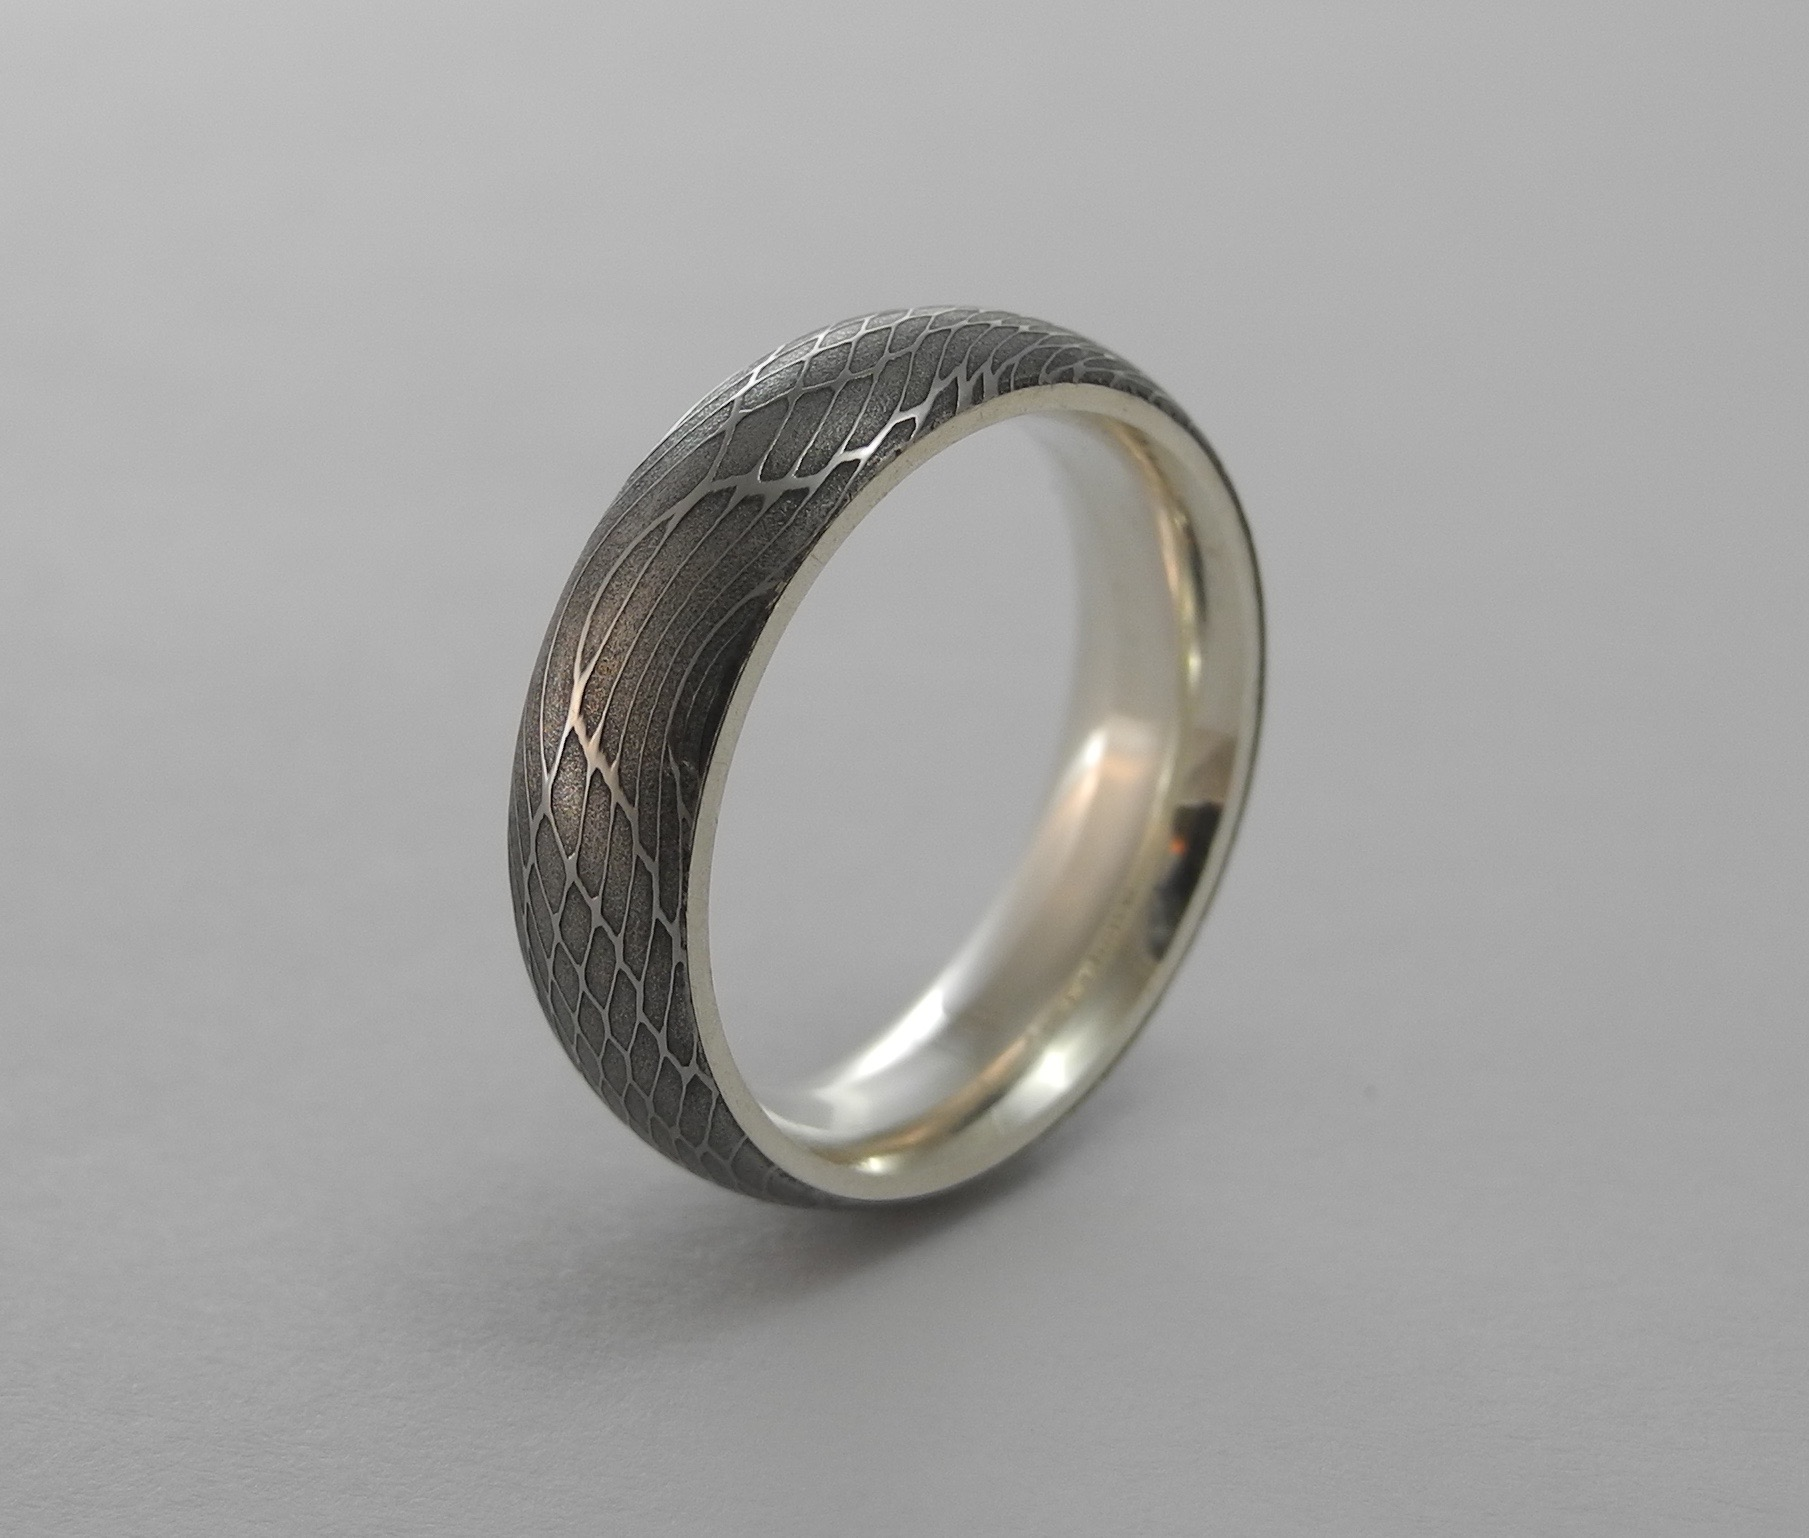 safety wedding rings safety wedding band Anium Vs Gold As Wedding Bands For Your Finger S Safety